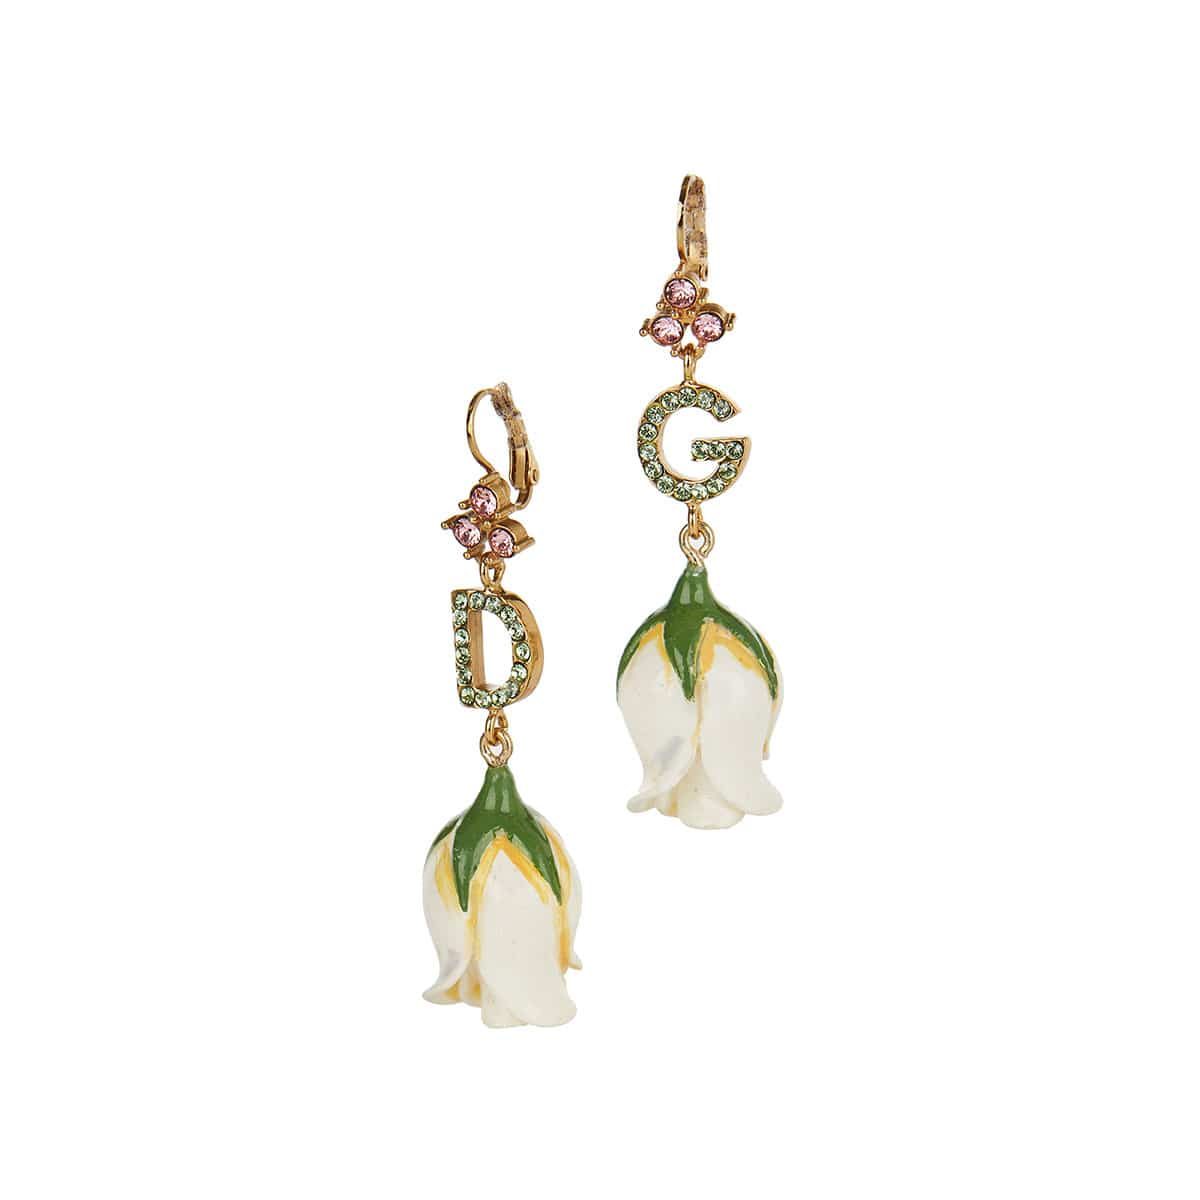 DG drop earrings with resin flowers